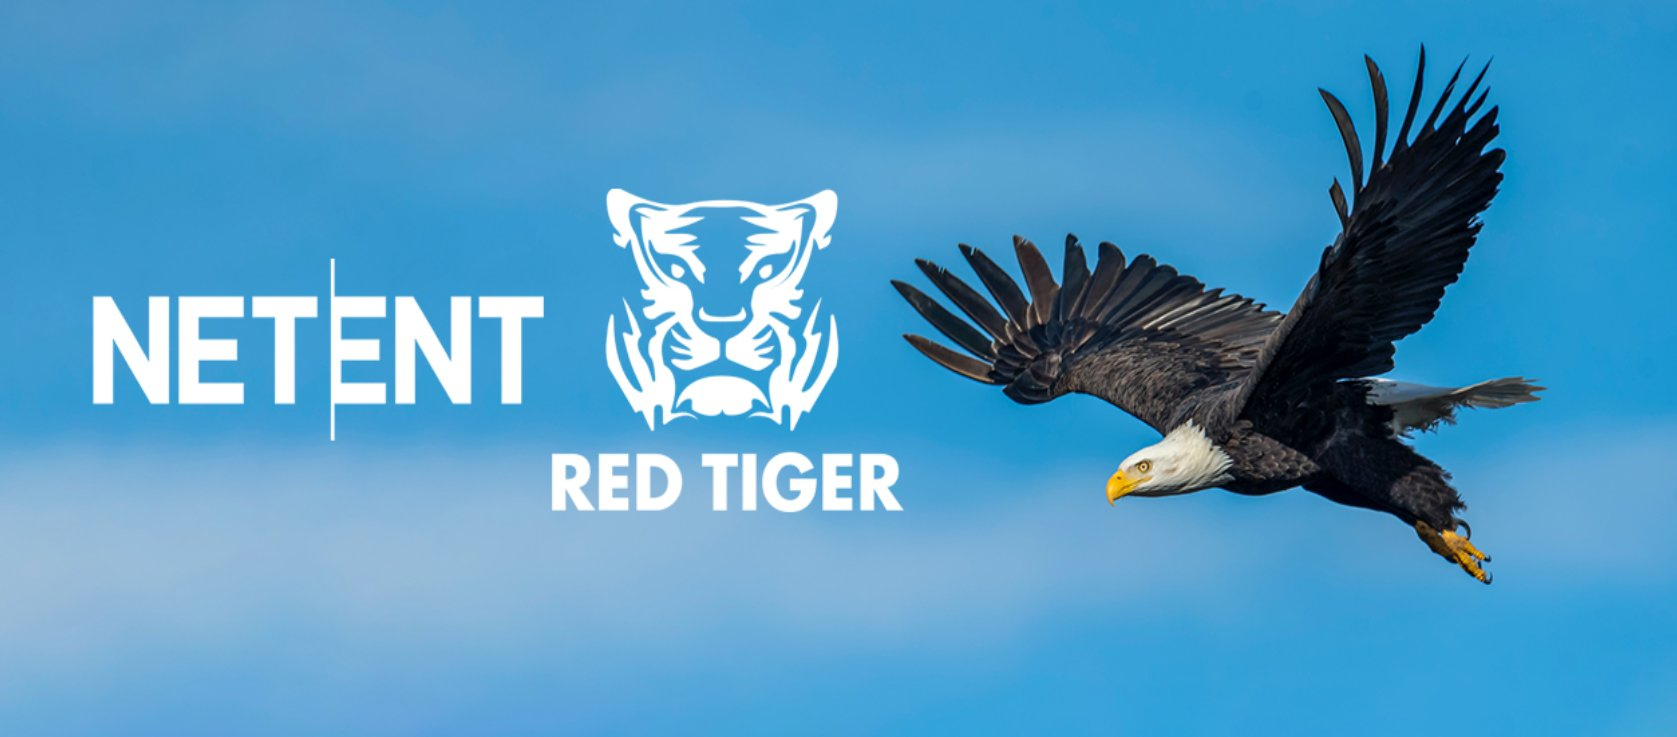 Red Tiger Together With NetEnt Launch In US